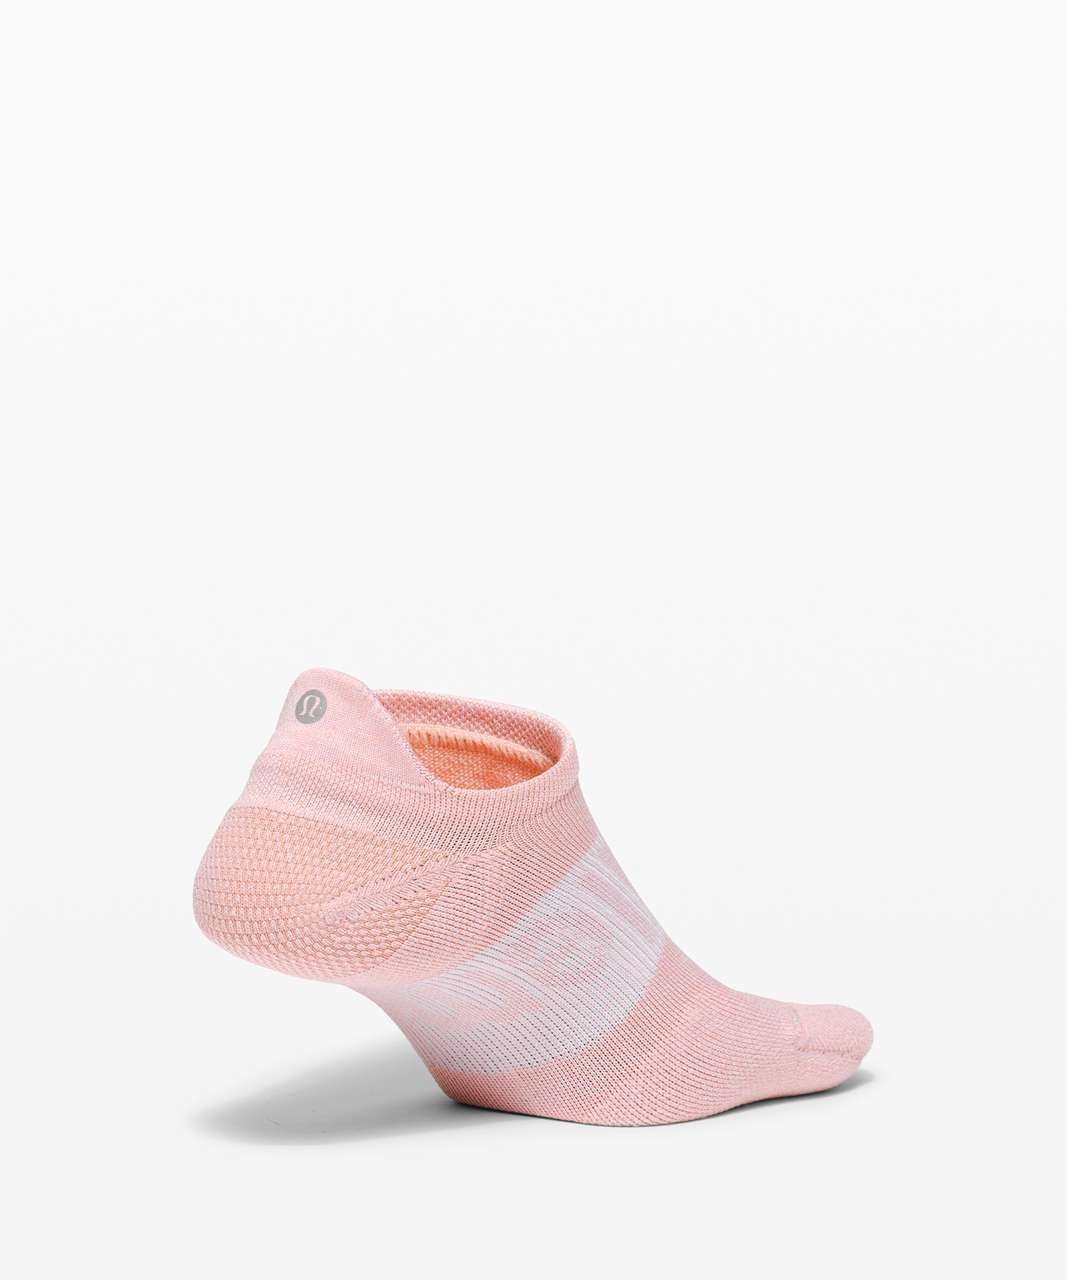 Lululemon Power Stride Tab Sock - Pink Puff